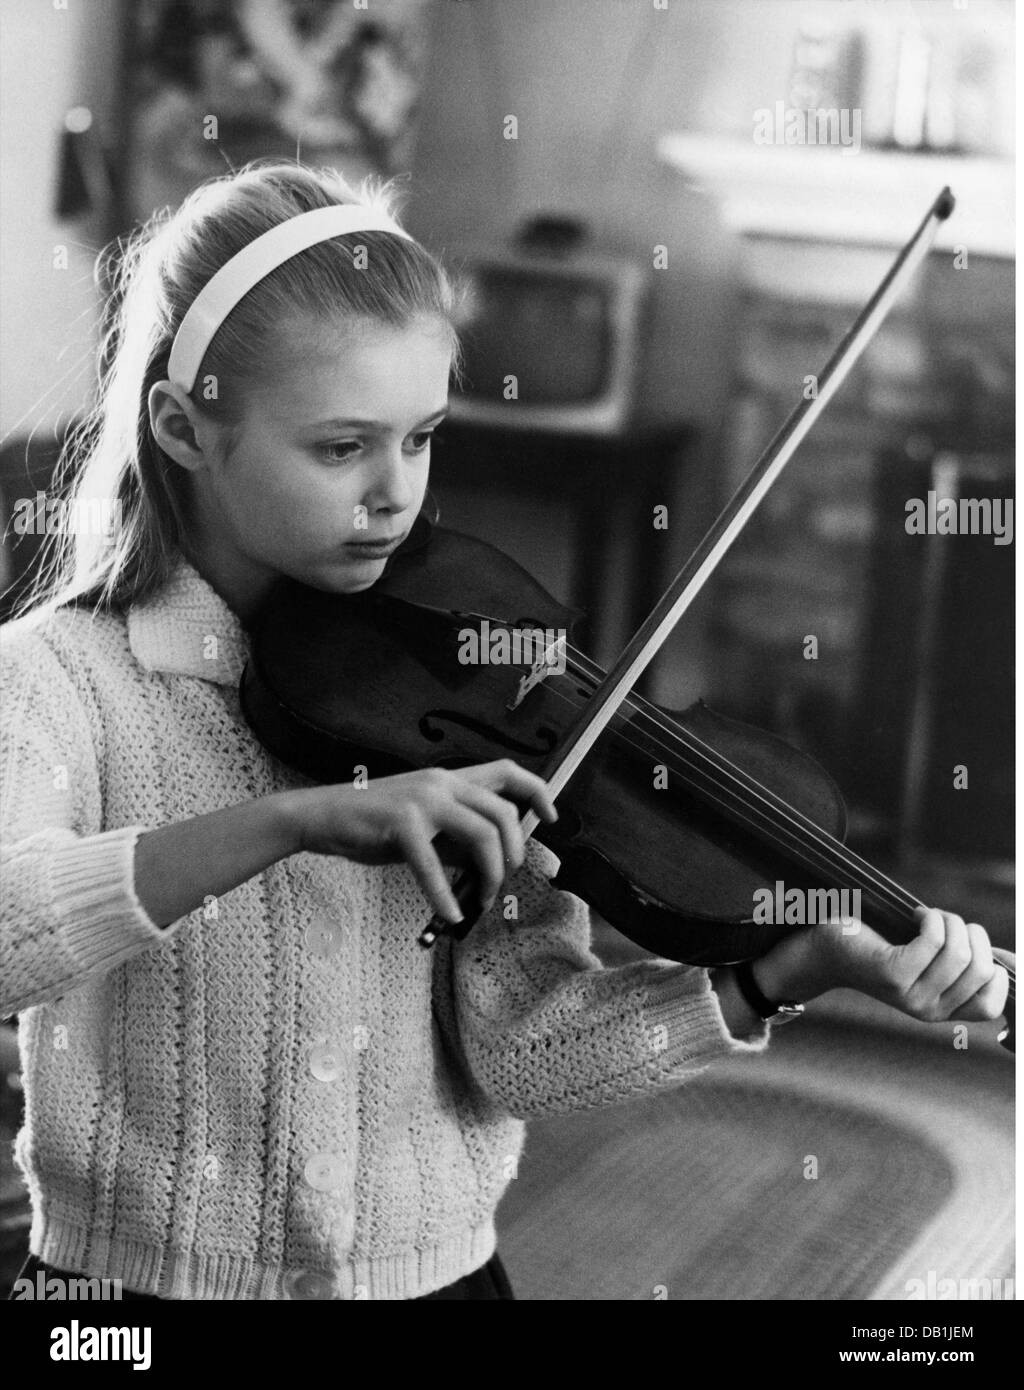 music, instruments, bowed instrument, girl playing violin, 1950s, Additional-Rights-Clearences-NA - Stock Image